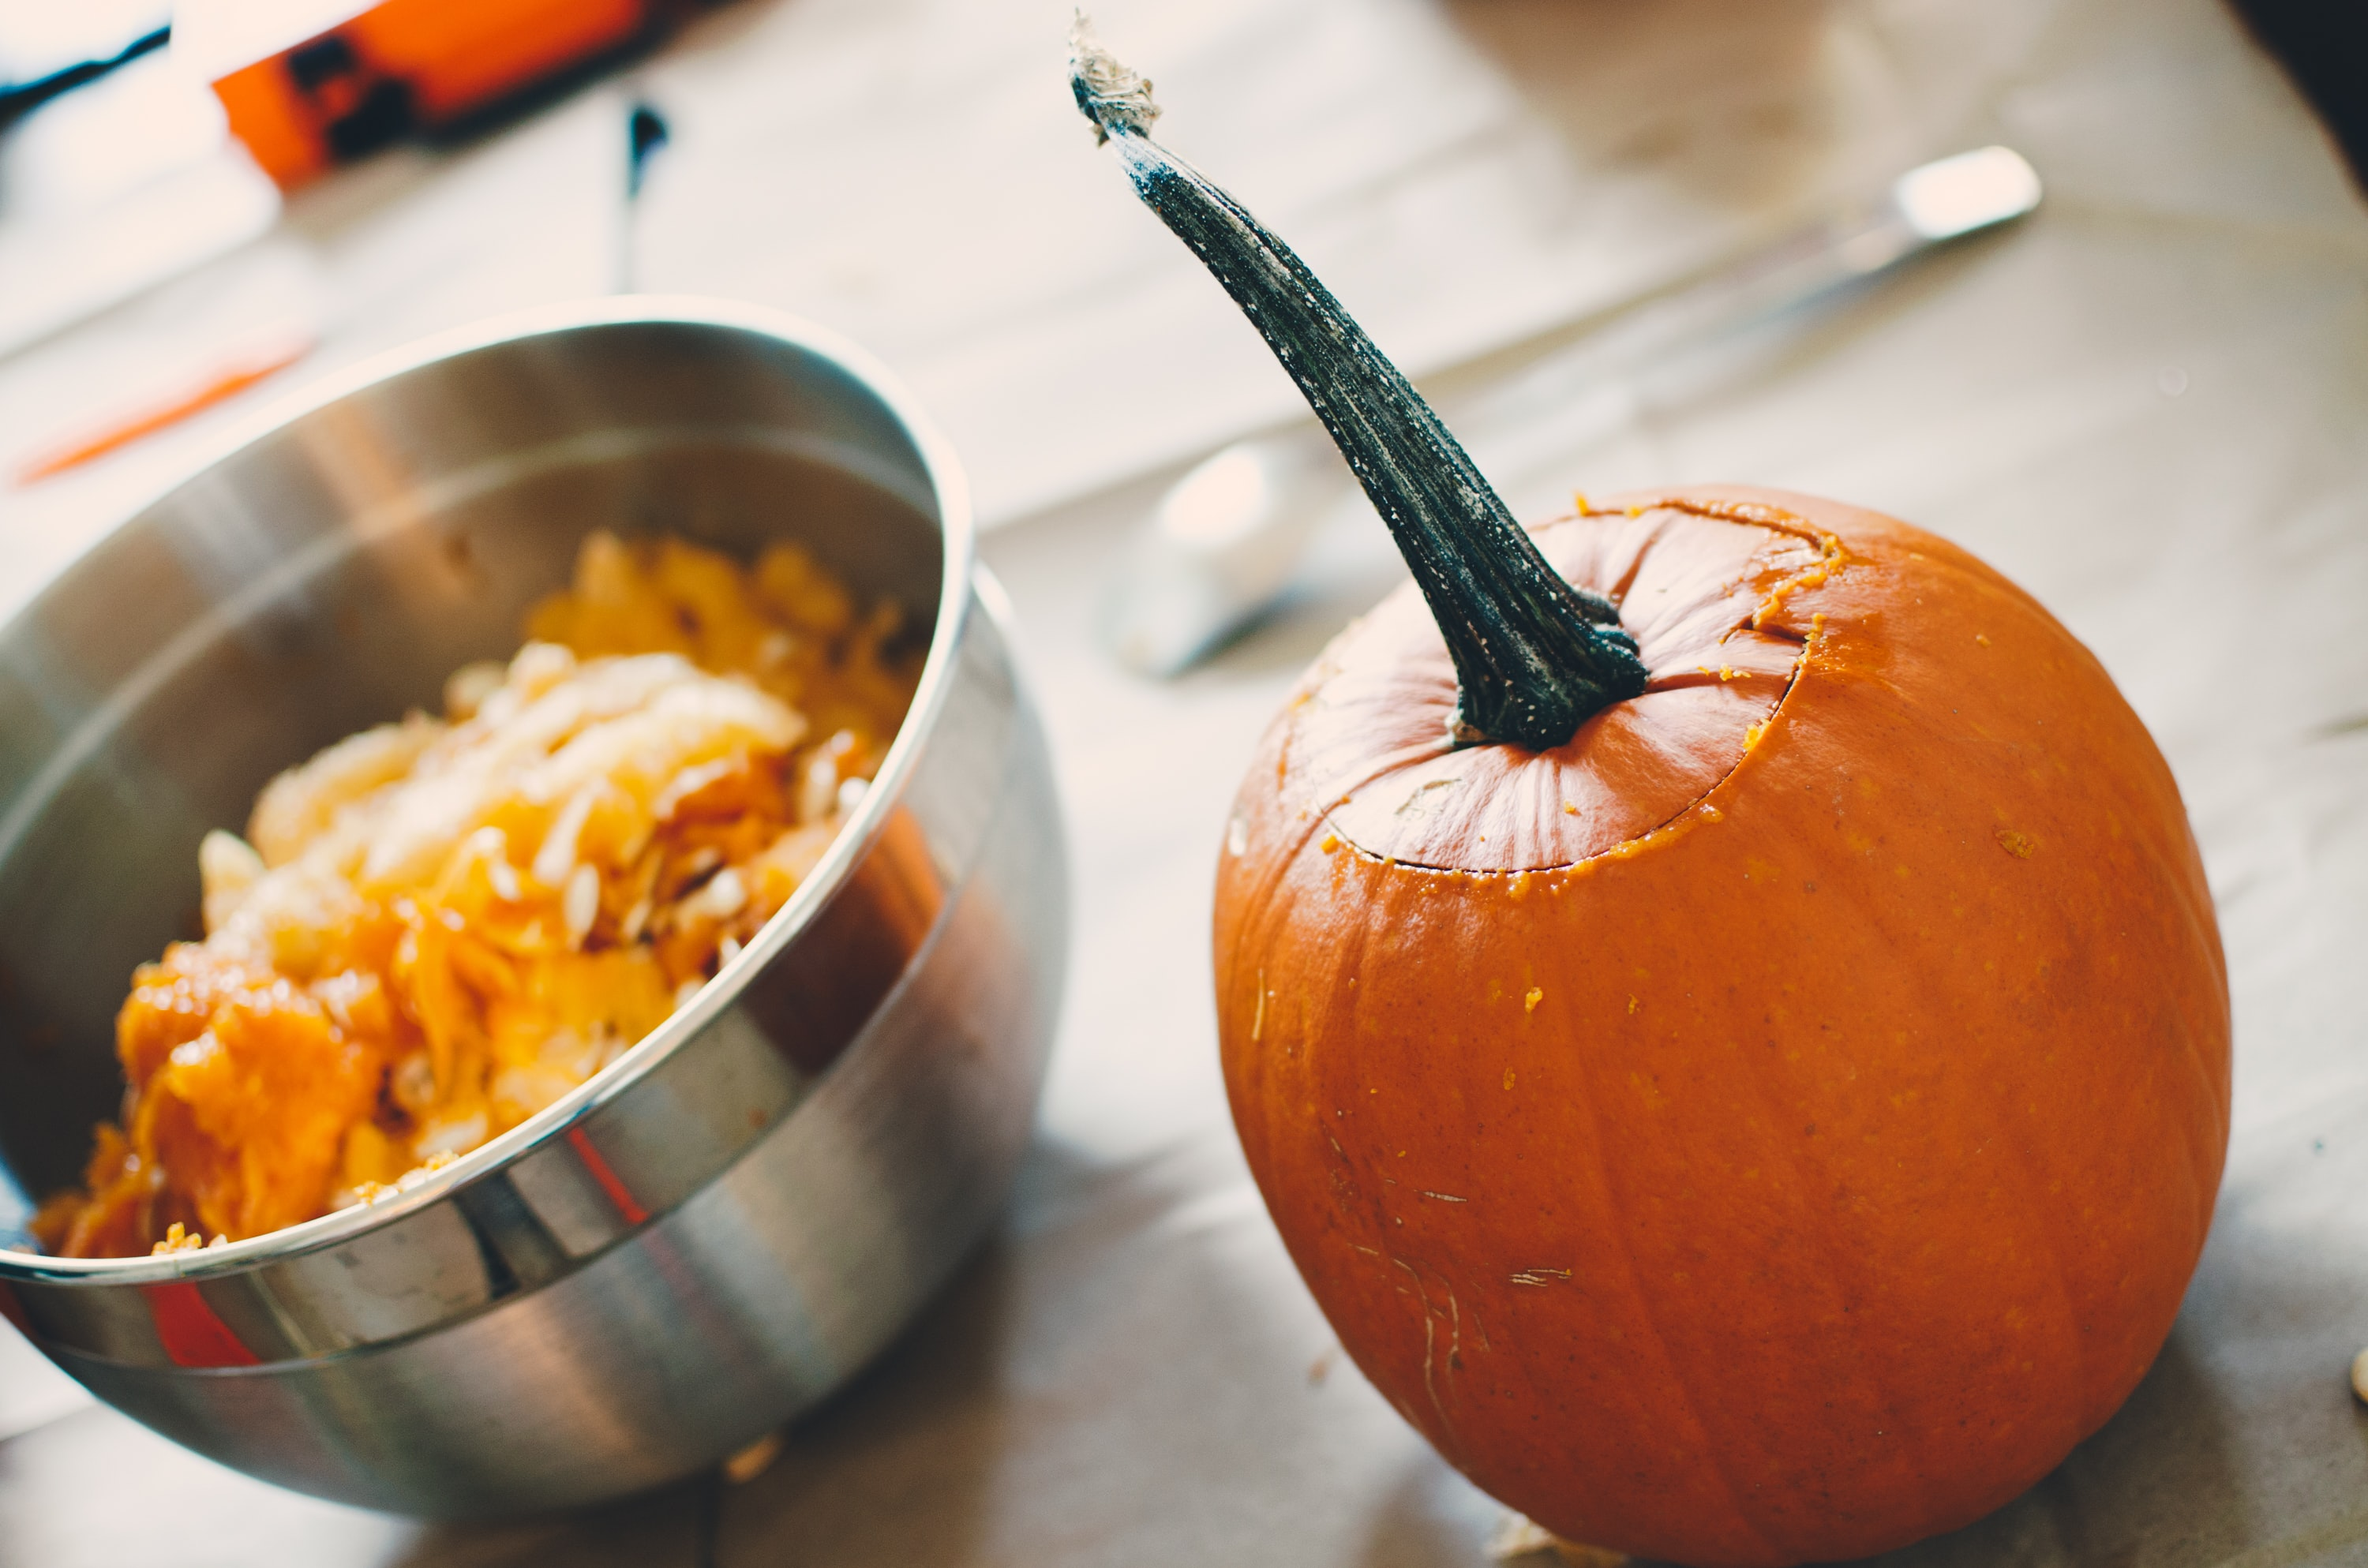 photo of hollowed-out pumpkin next to bowl of seeds and pumpkin guts